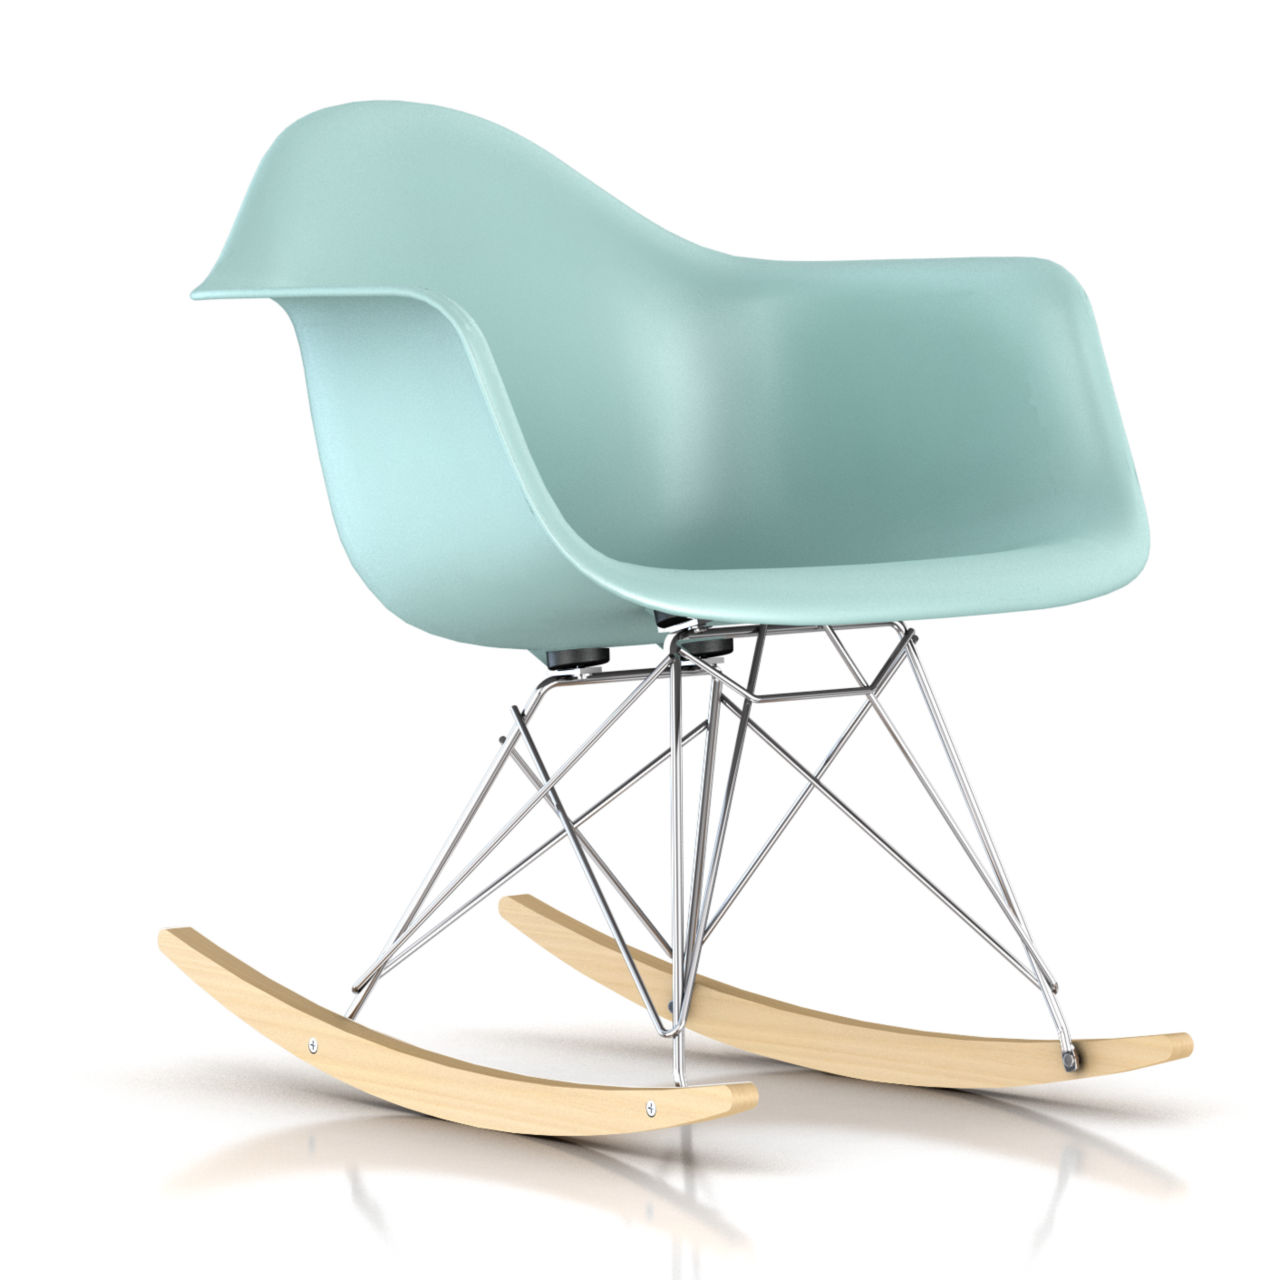 Eames Molded Plastic Rocking Chair in Aquasky by Herman Miller